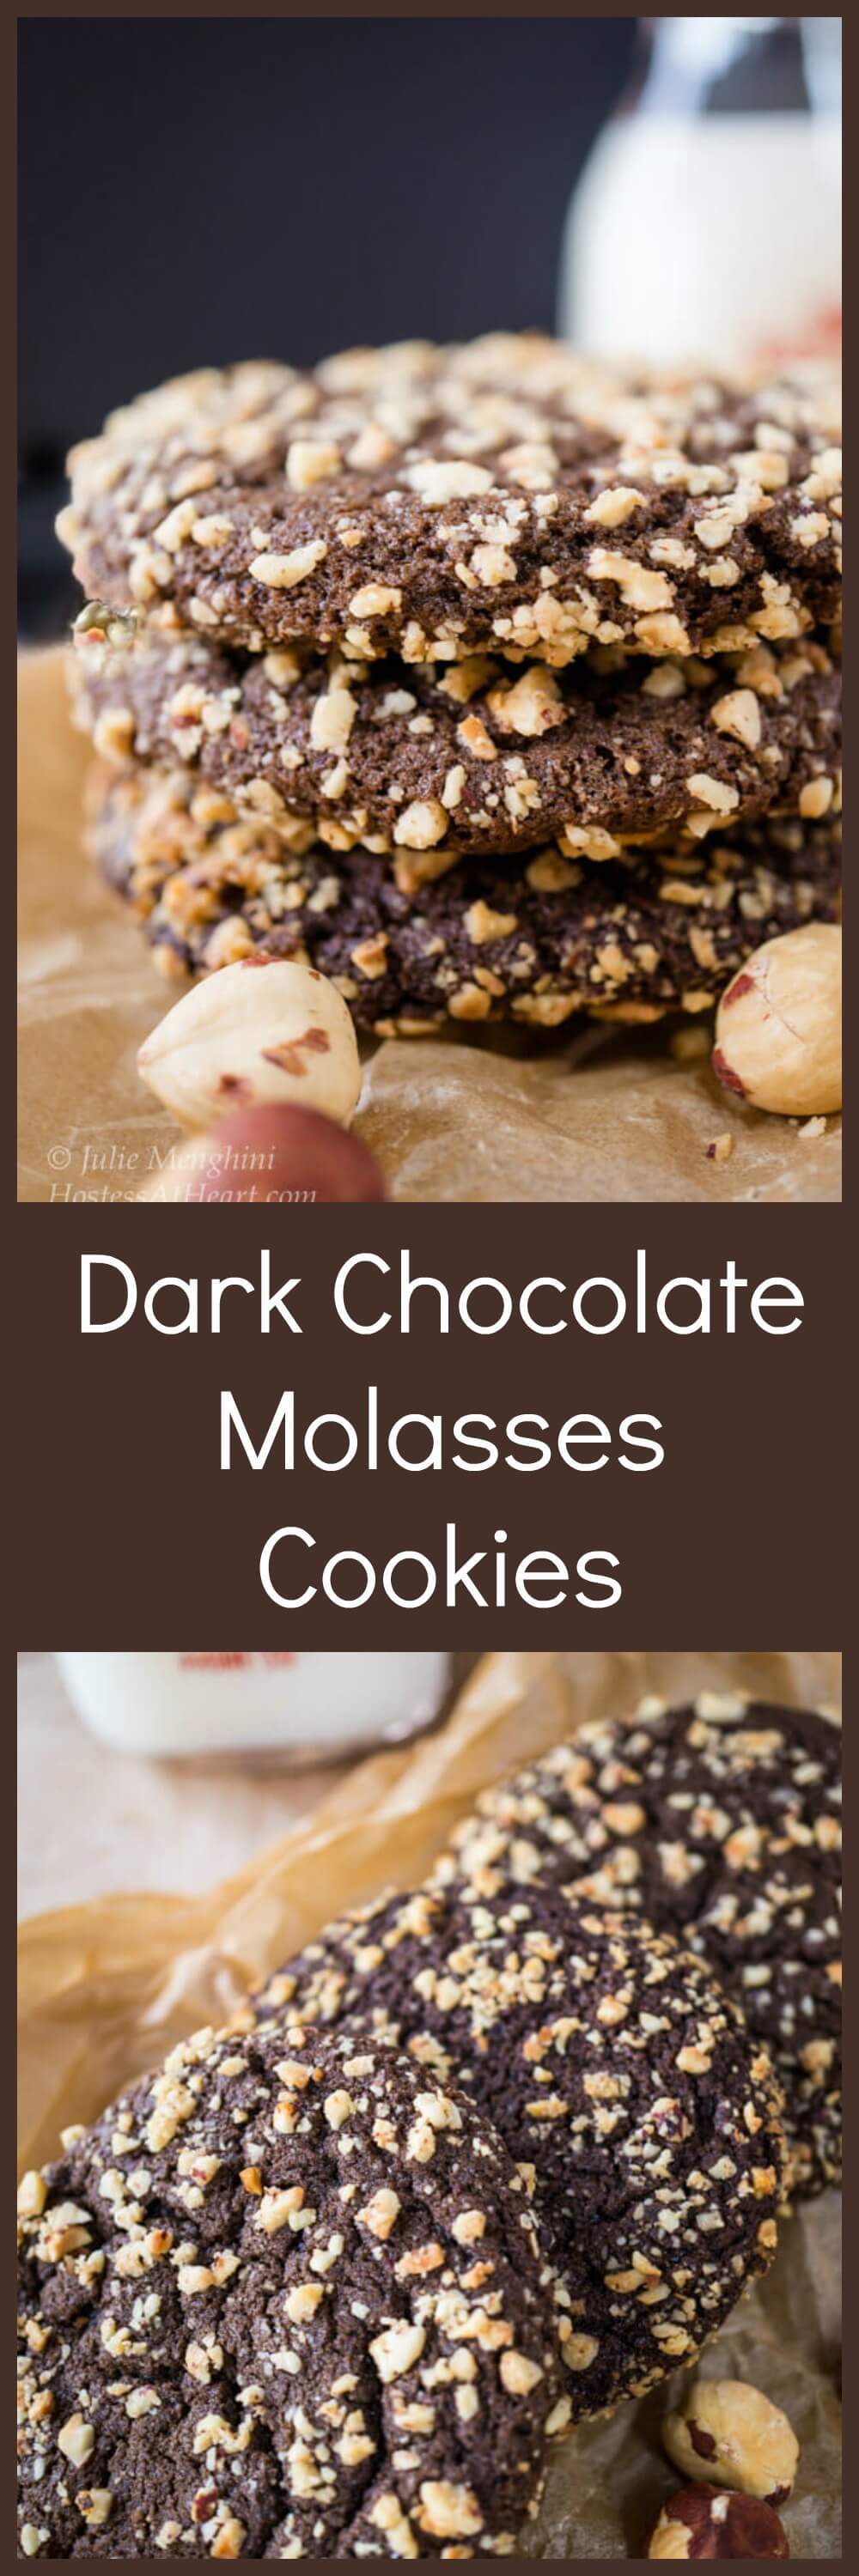 A Dark Chocolate Molasses cookie that's soft on the inside with a delicate crunch on the outside. They're perfect for any occasion! #recipe #cookie #instagood #sweetscookies